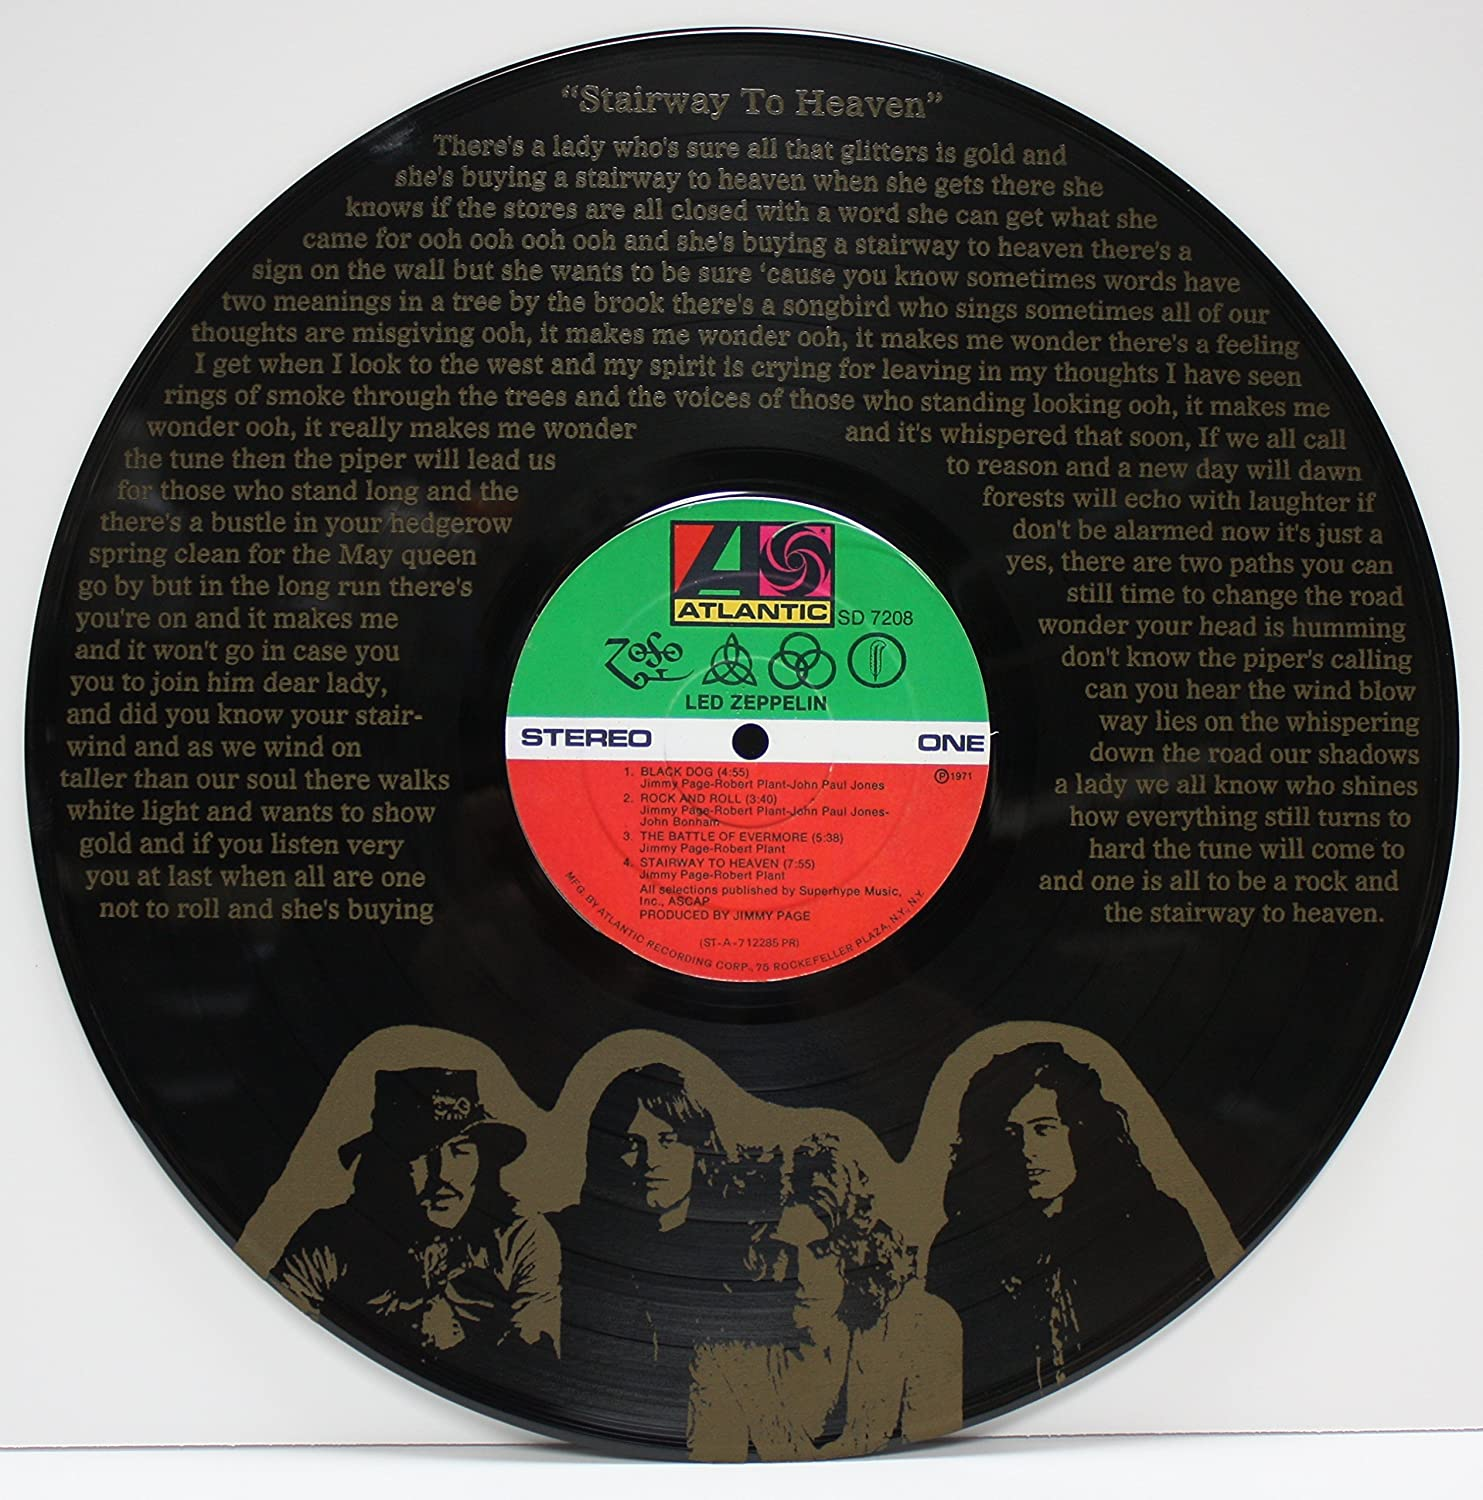 Led Zeppelin Stairway To Heaven LTD Edition 12' vinyl LP record Laser Etched wall art, ready to hang.'M4' ready to hang.M4